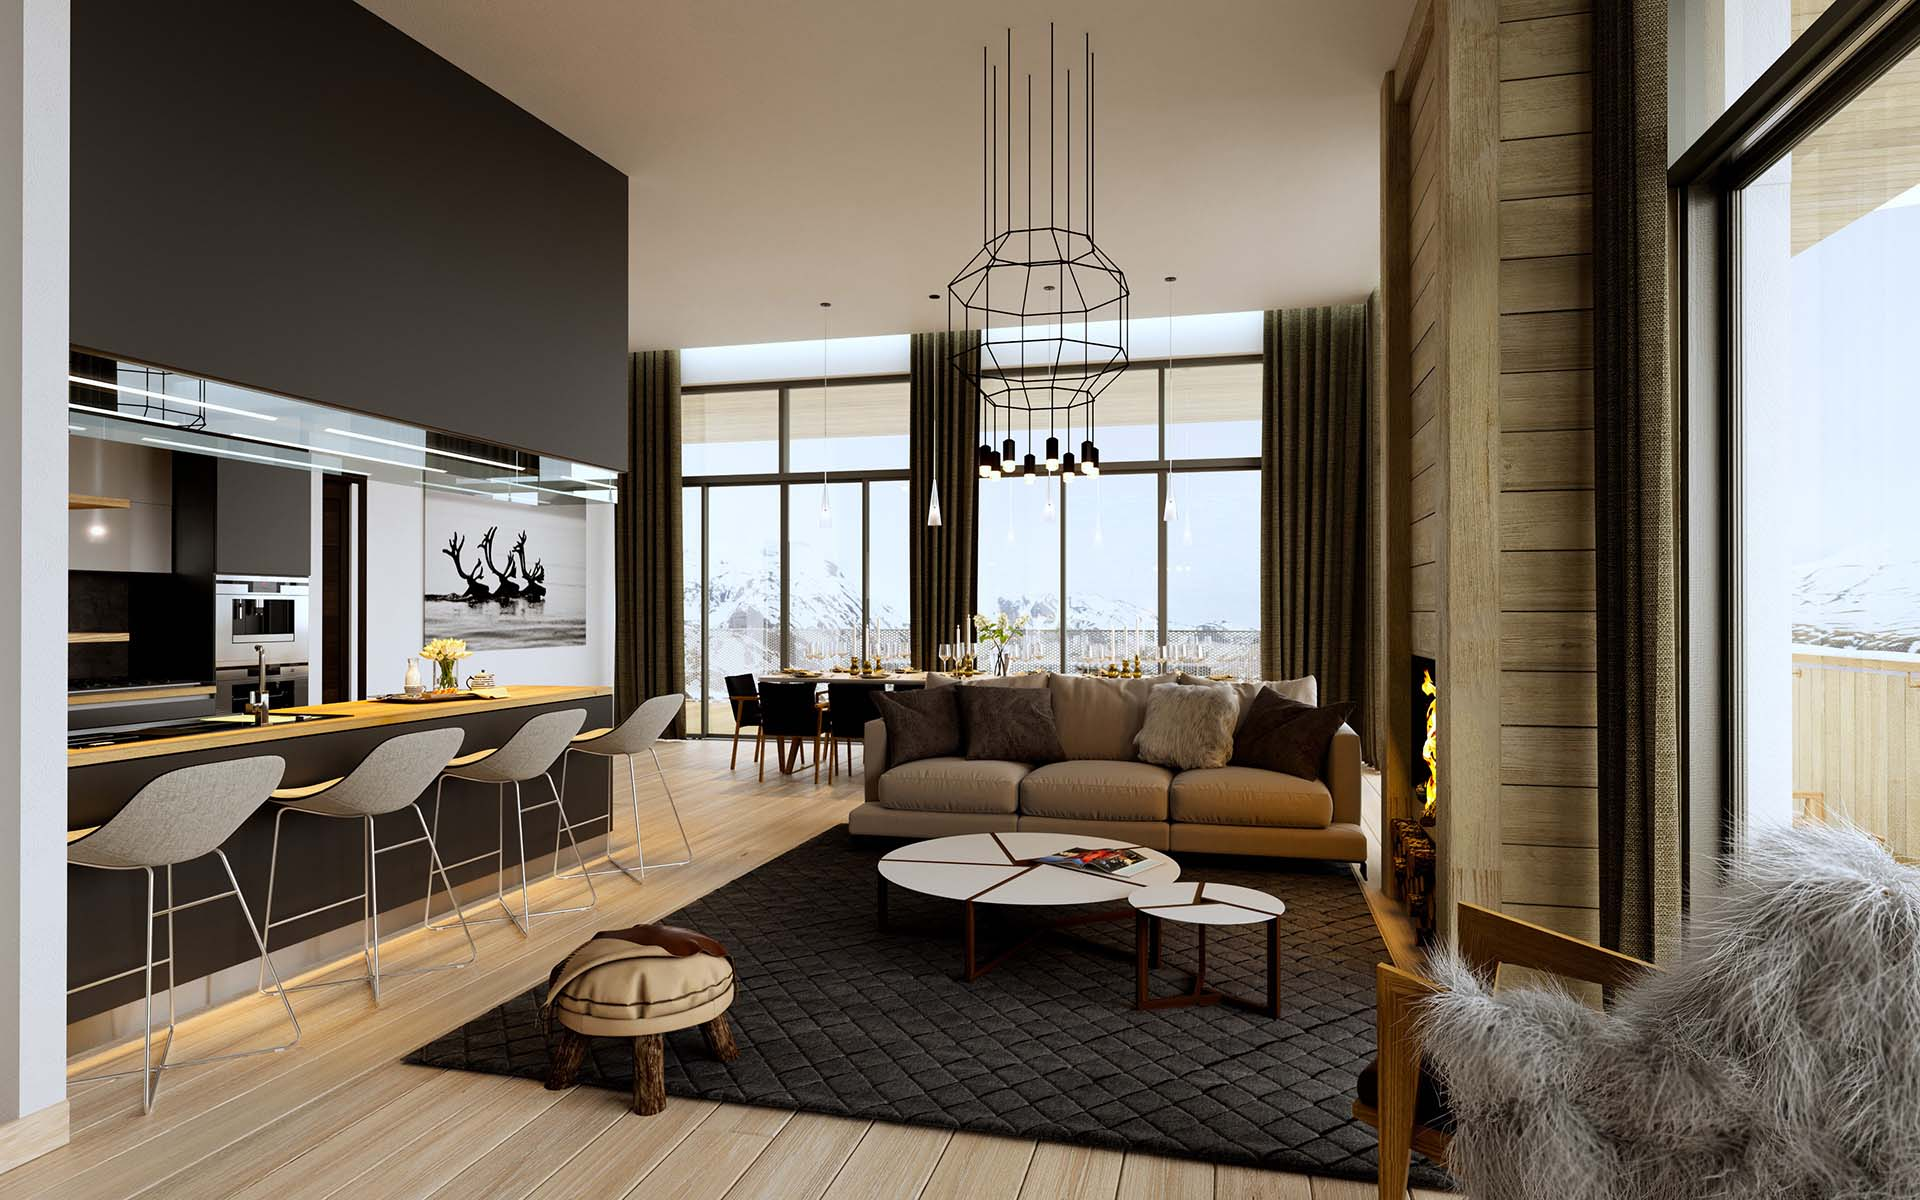 Our 3D architects produce your 3D renderings of real estate projects.